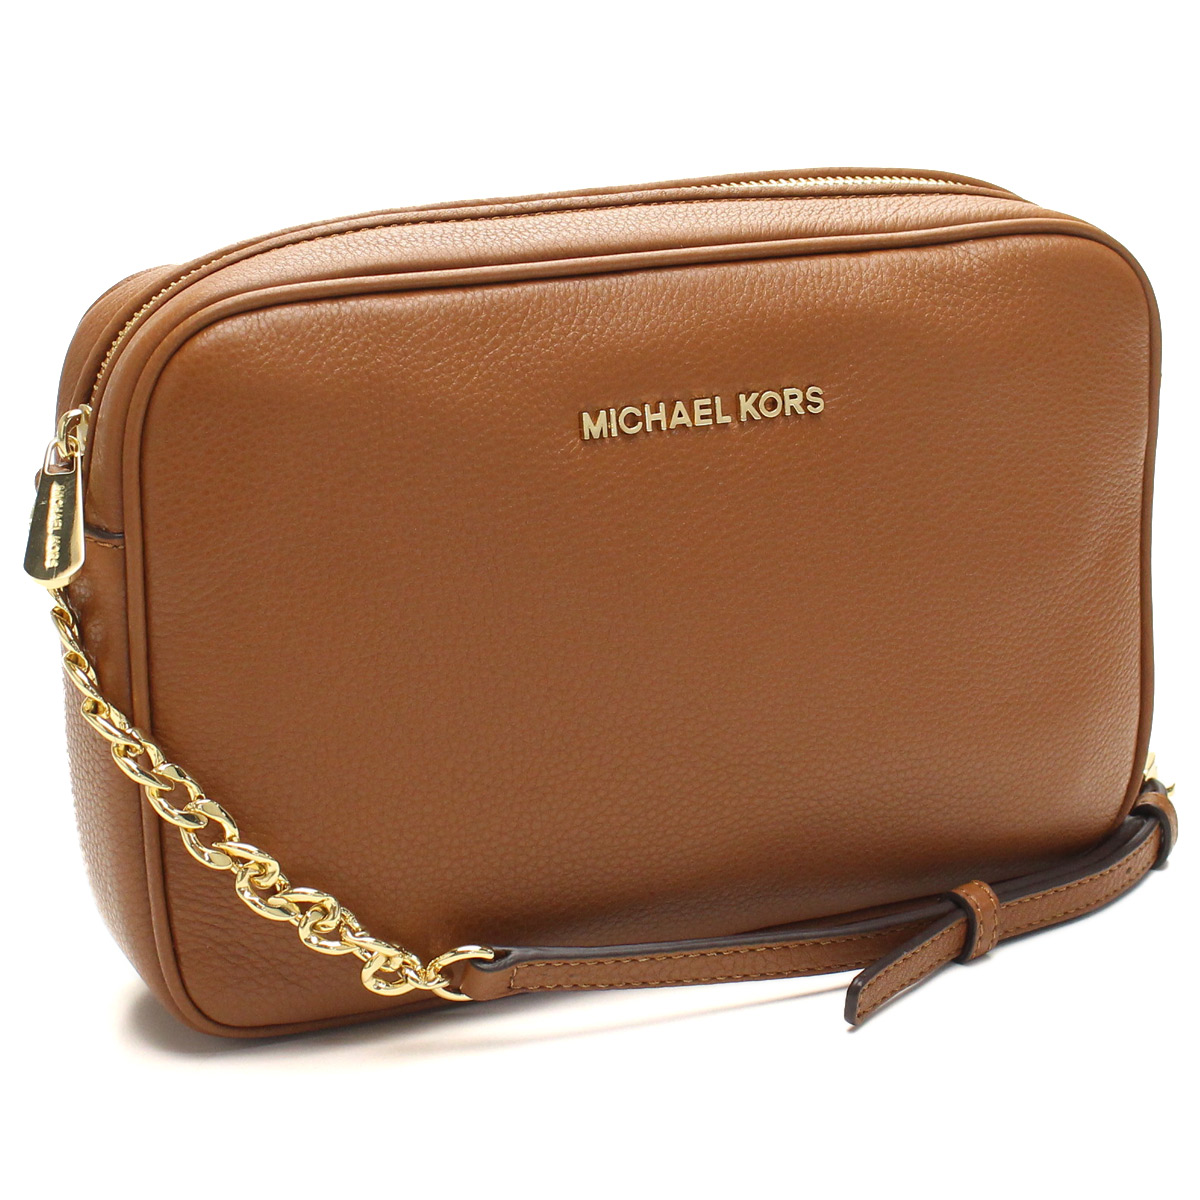 9c6a5a1e3 Bighit The total brand wholesale: Michael Kors (MICHAEL KORS) BEDFORD  diagonal shoulder bag 32F5GBFC3L LUGGAGE Brown( taxfree/send by  EMS/authentic/A brand ...